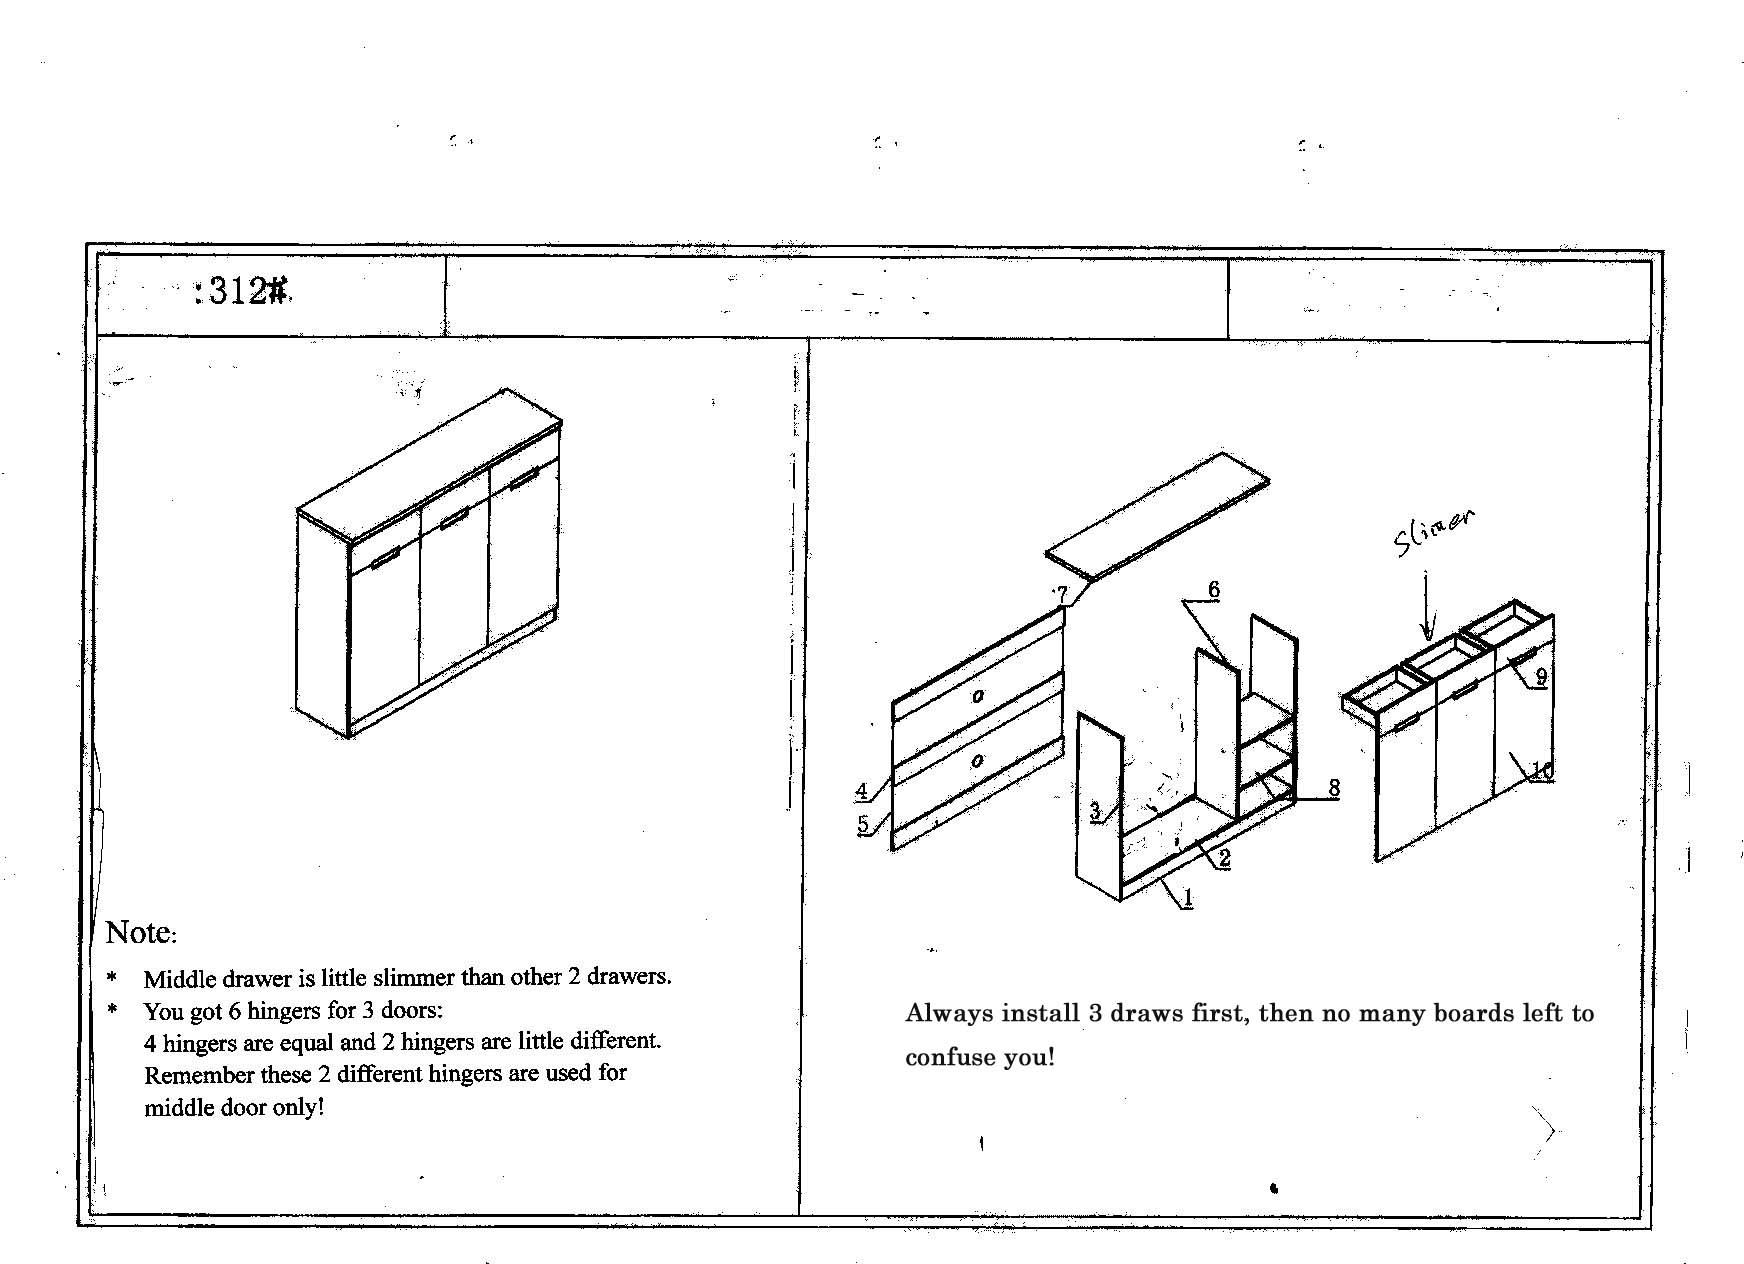 installation diagram: office furniture melbourne